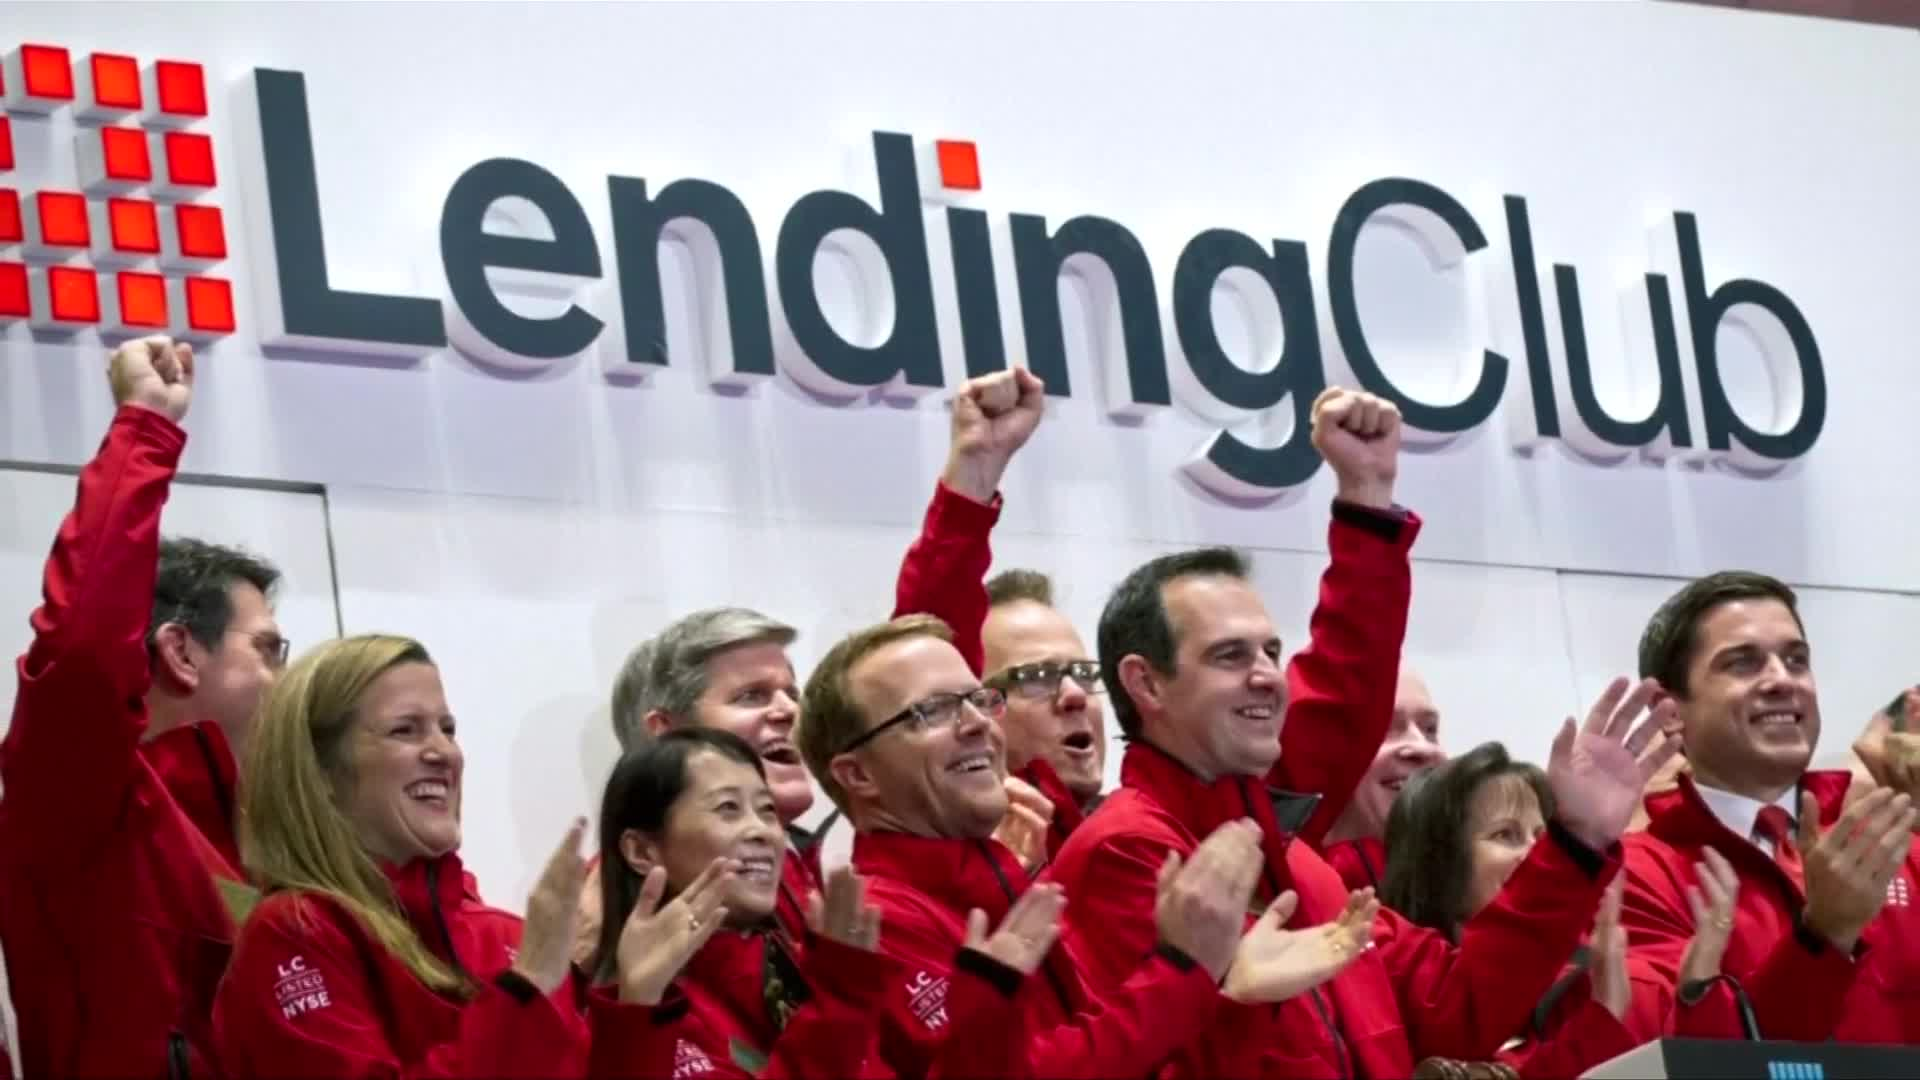 Lending Club names new CEO